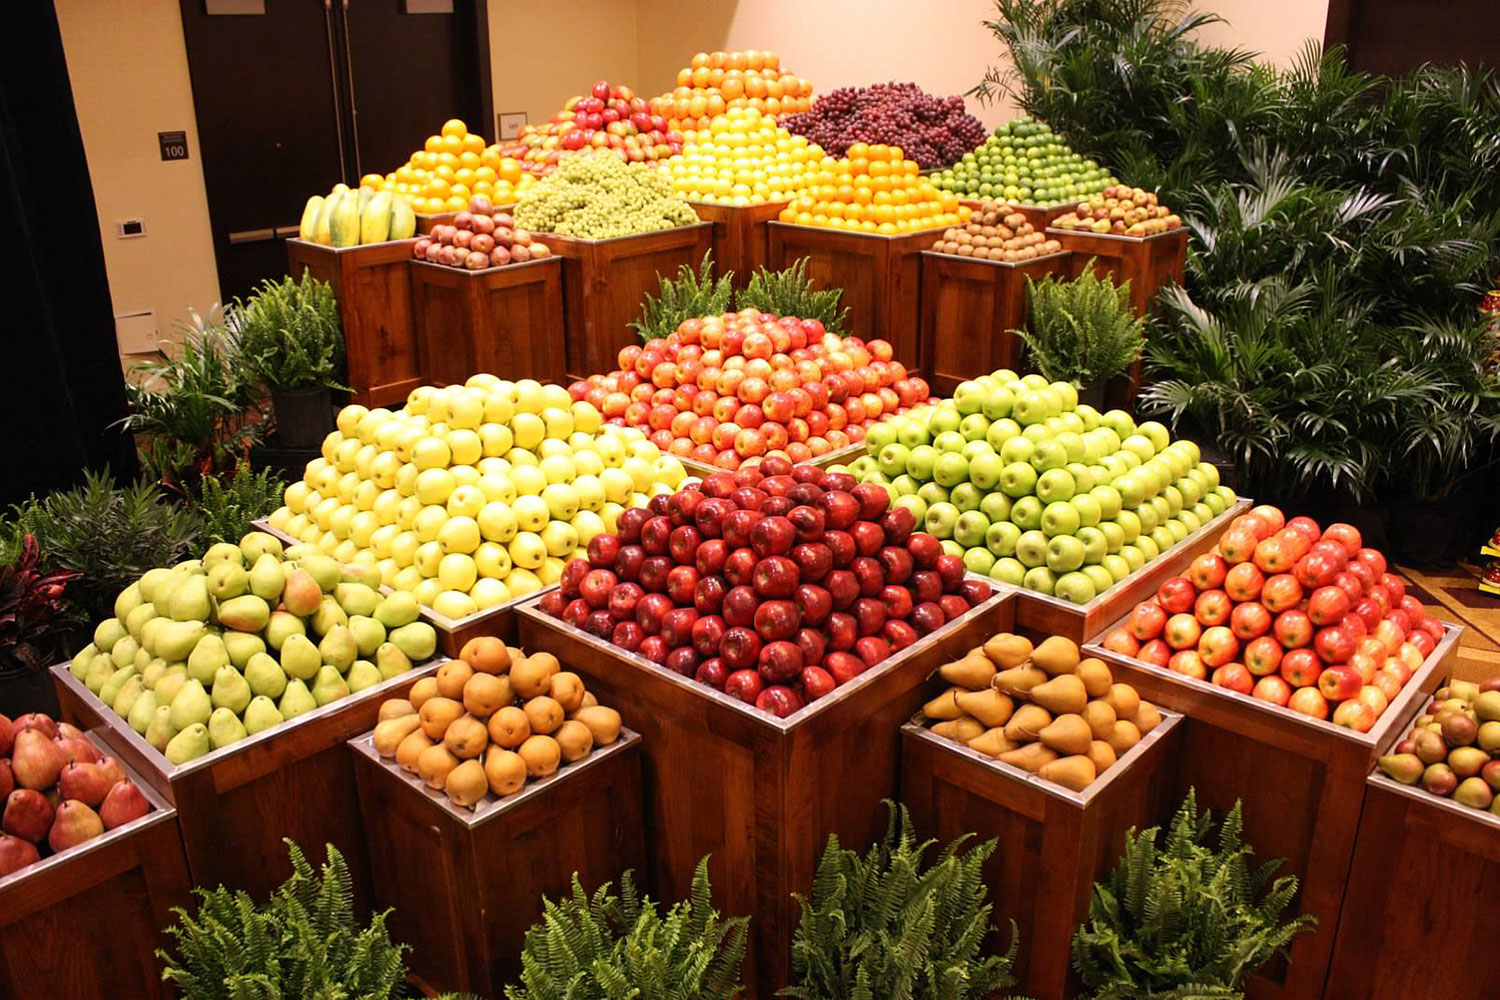 produce-display-3.jpg